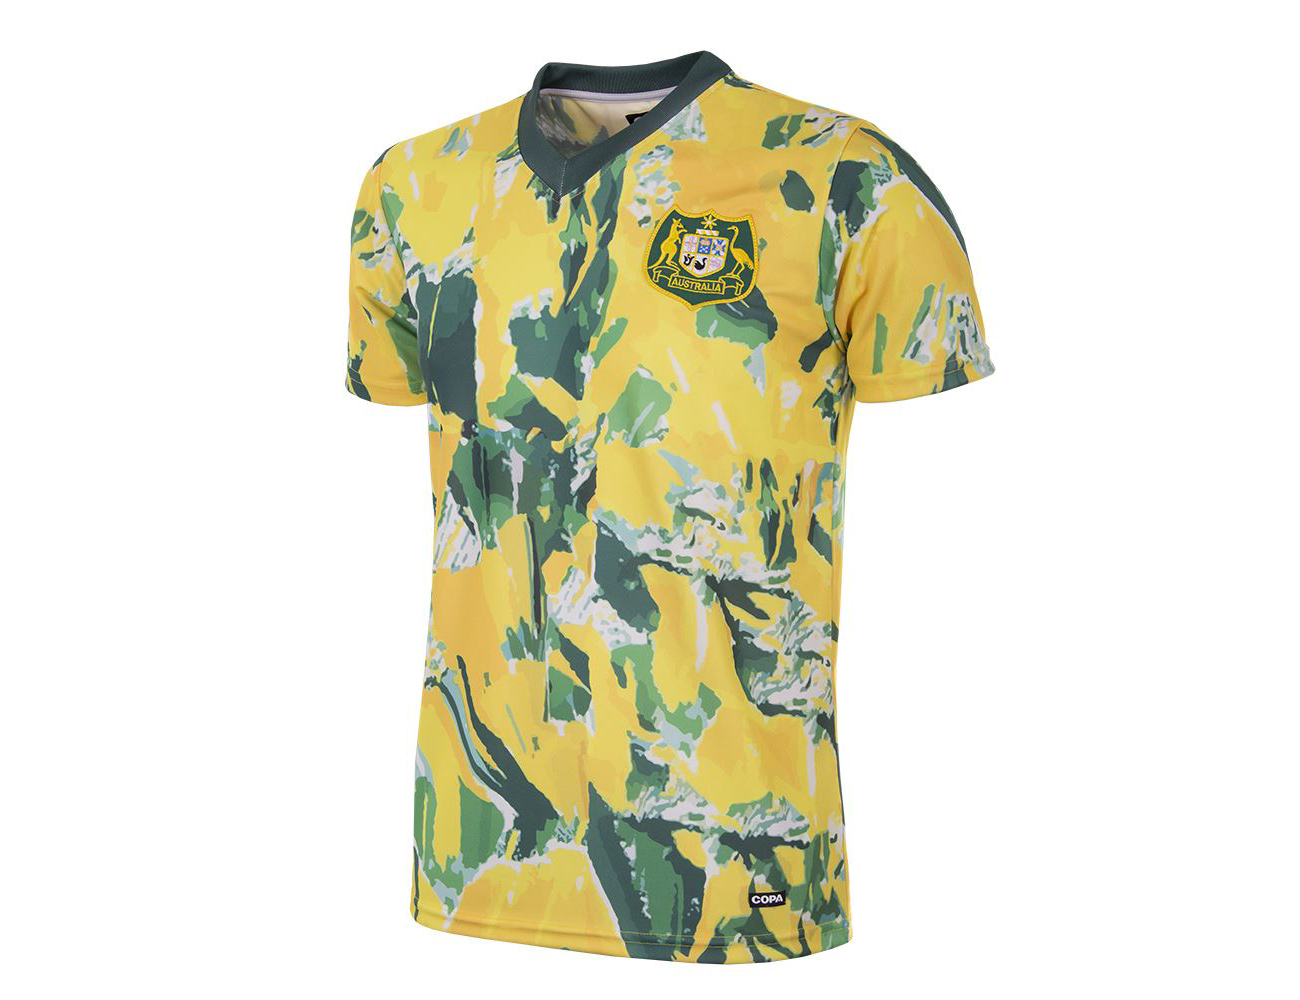 Australia-1990-93-Short-Sleeve-Retro-Football-Shirt-y-4170